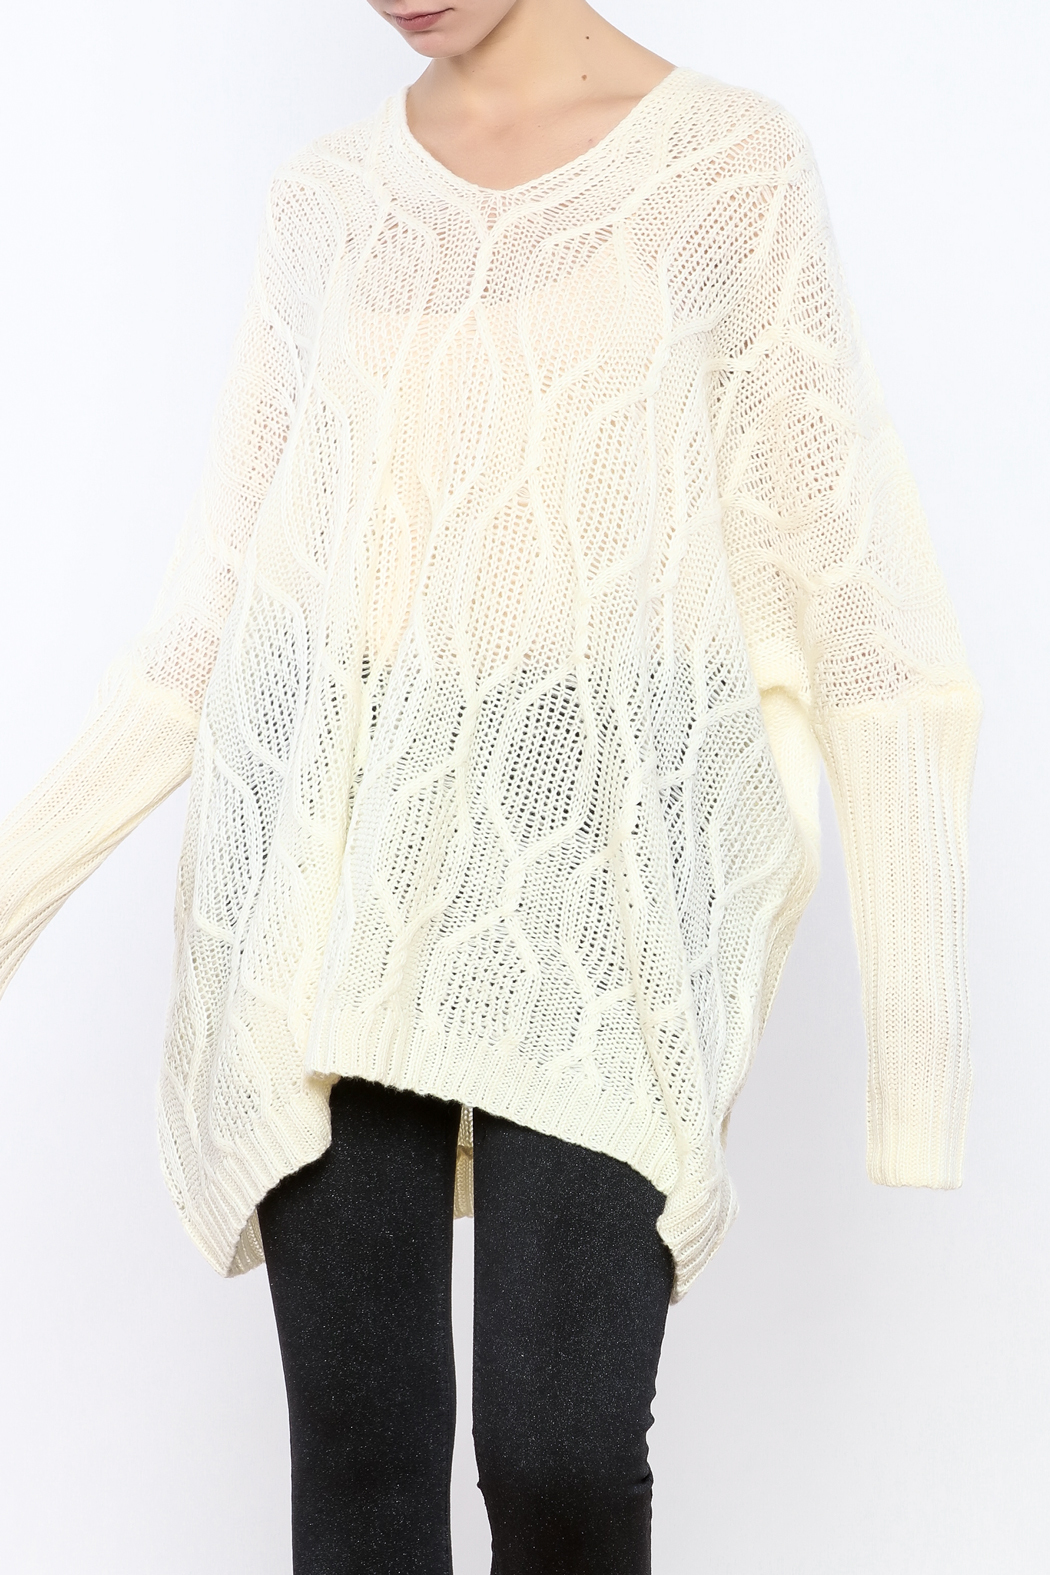 Ppla Oversized Cable Knit Sweater From Kansas By Fitwear Boutique